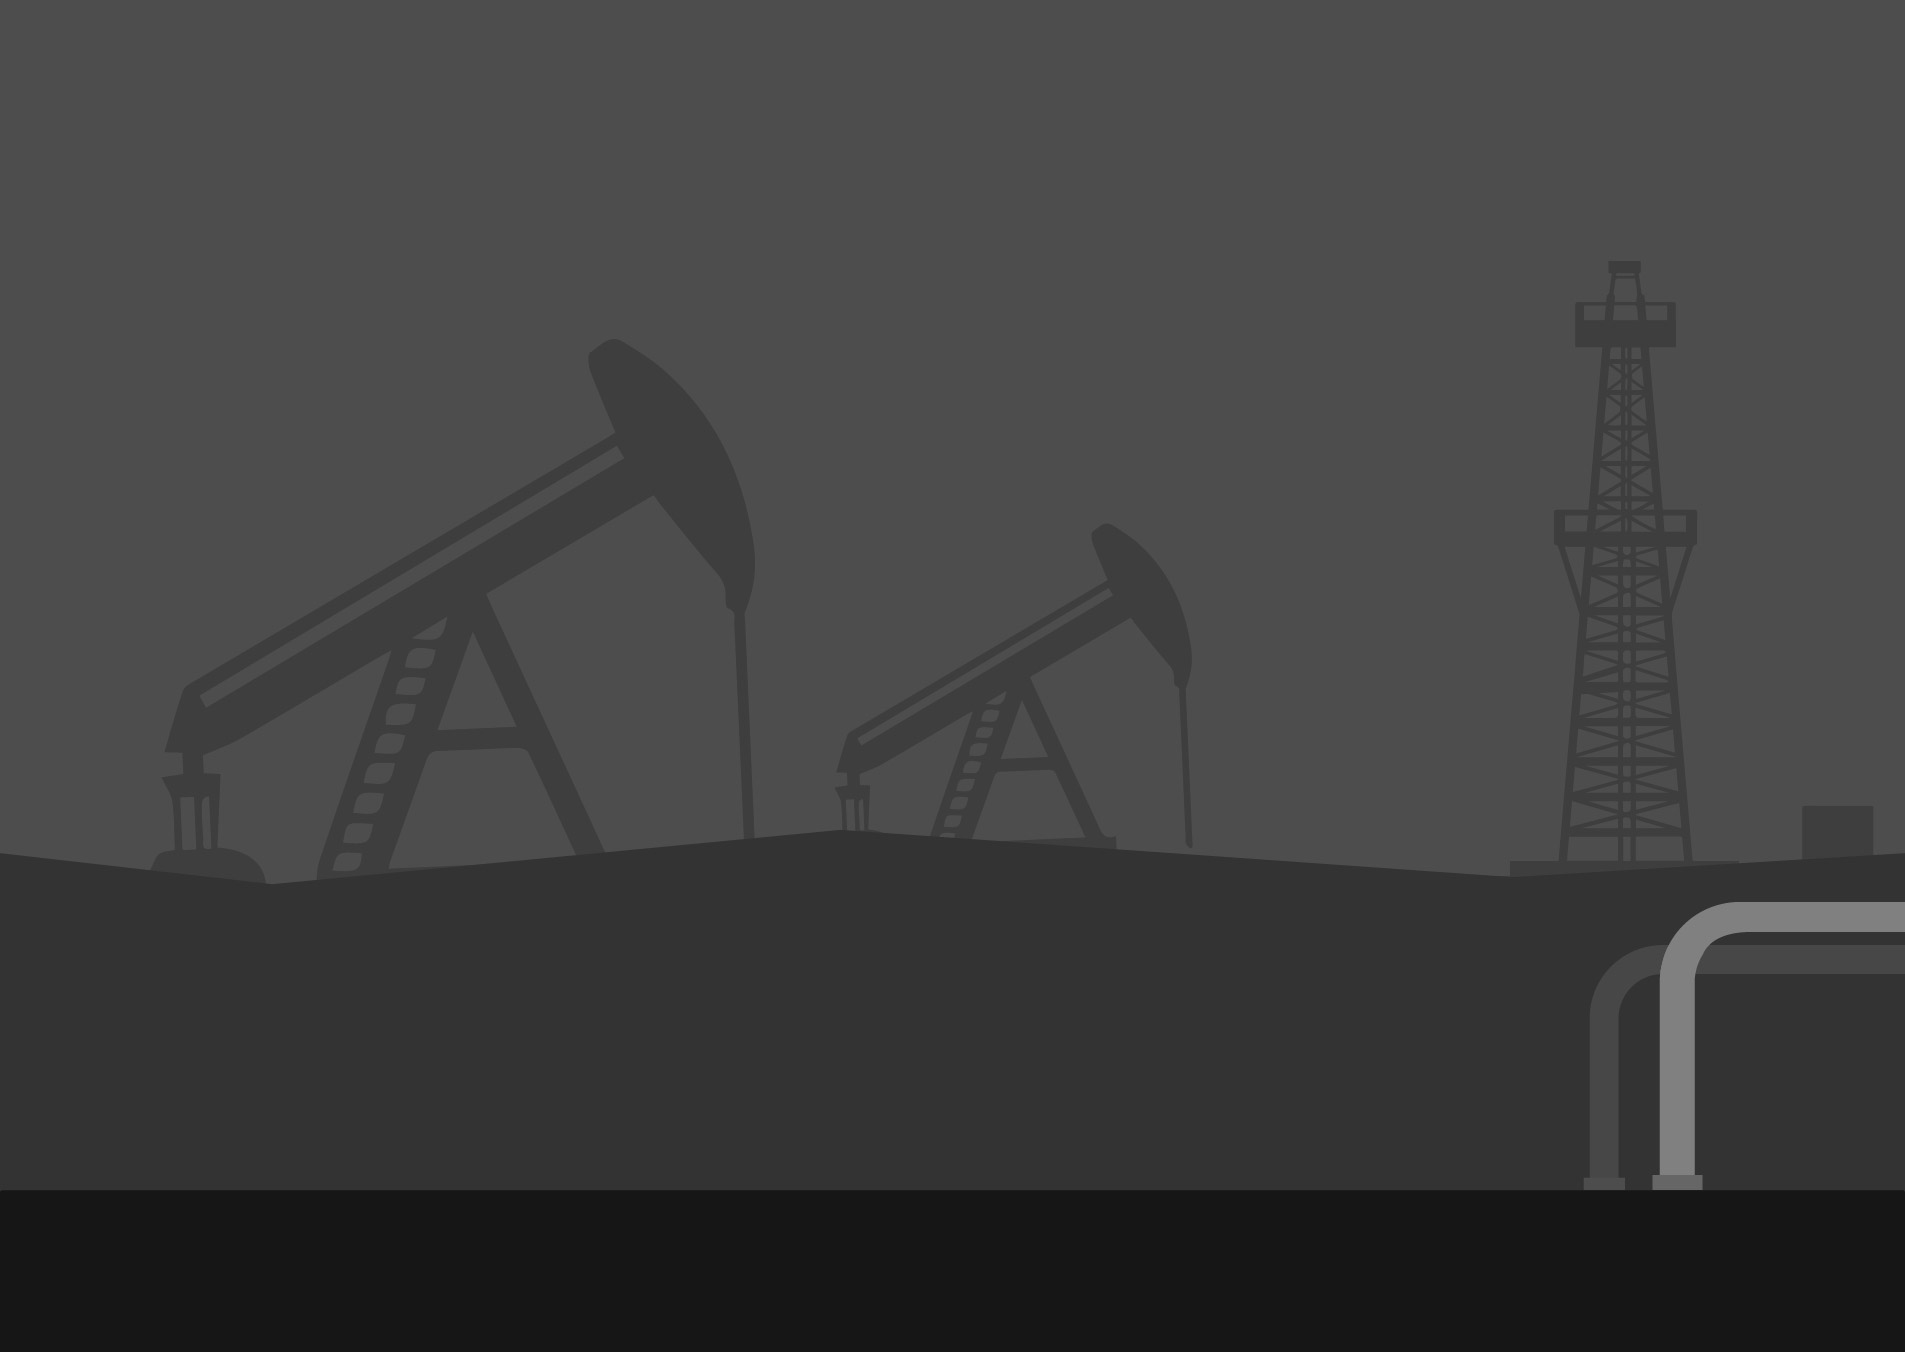 Oil & gas industry intralinks